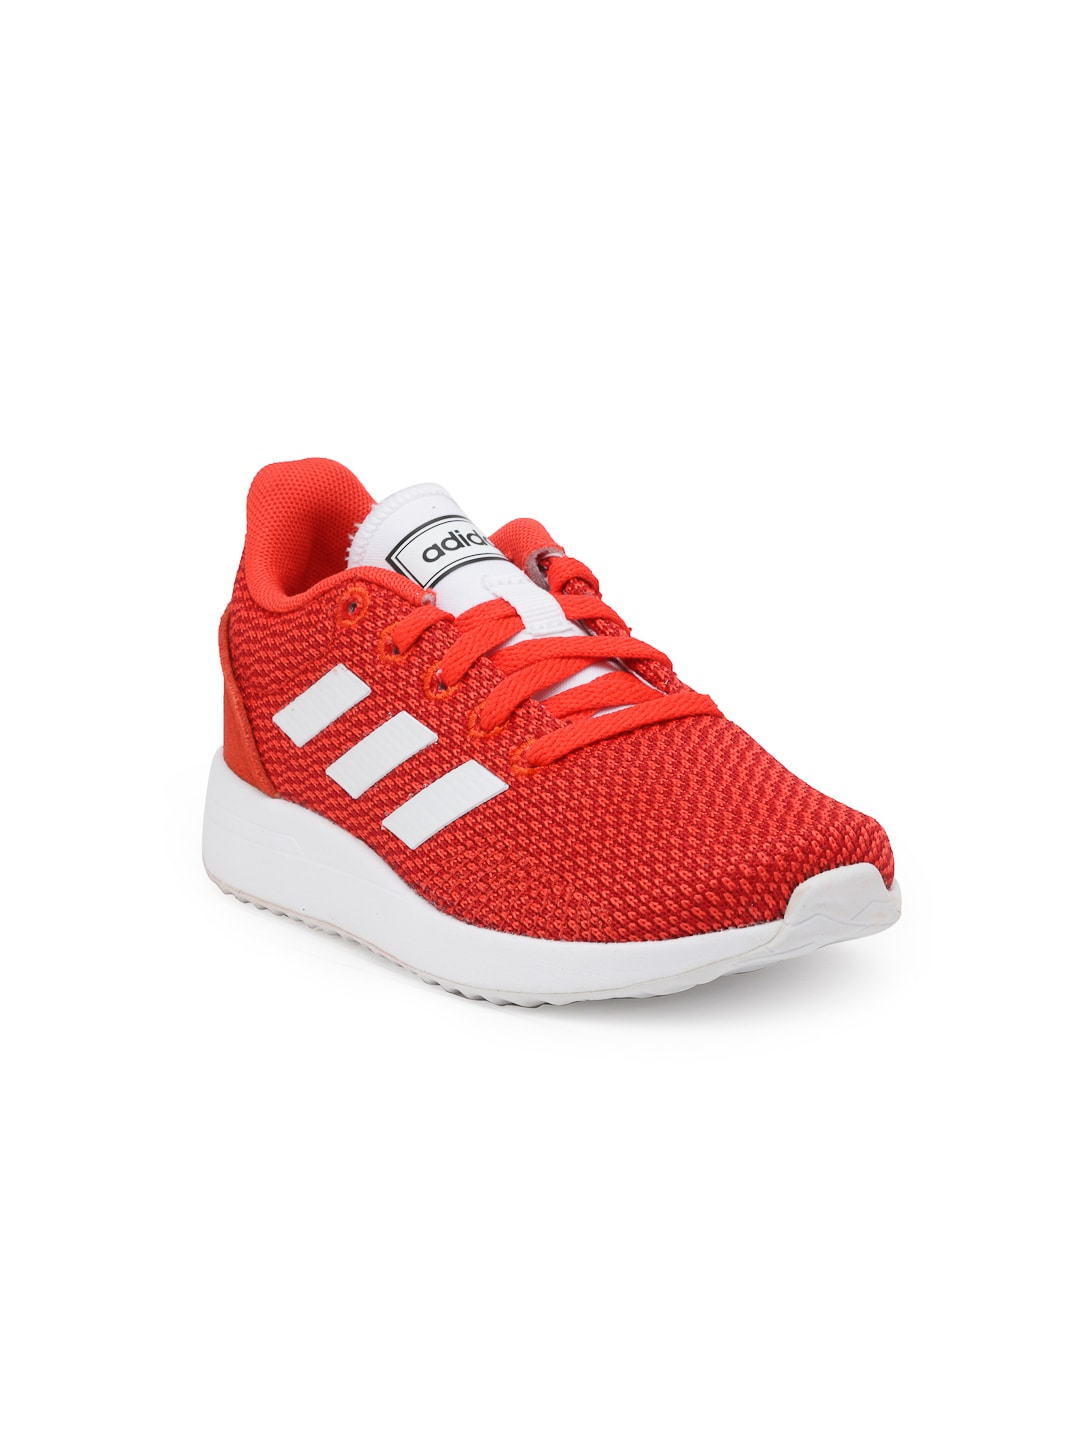 competitive price 6968d f84e6 Sports Shoes For Girls- Buy Girls Sports Shoes online in Ind